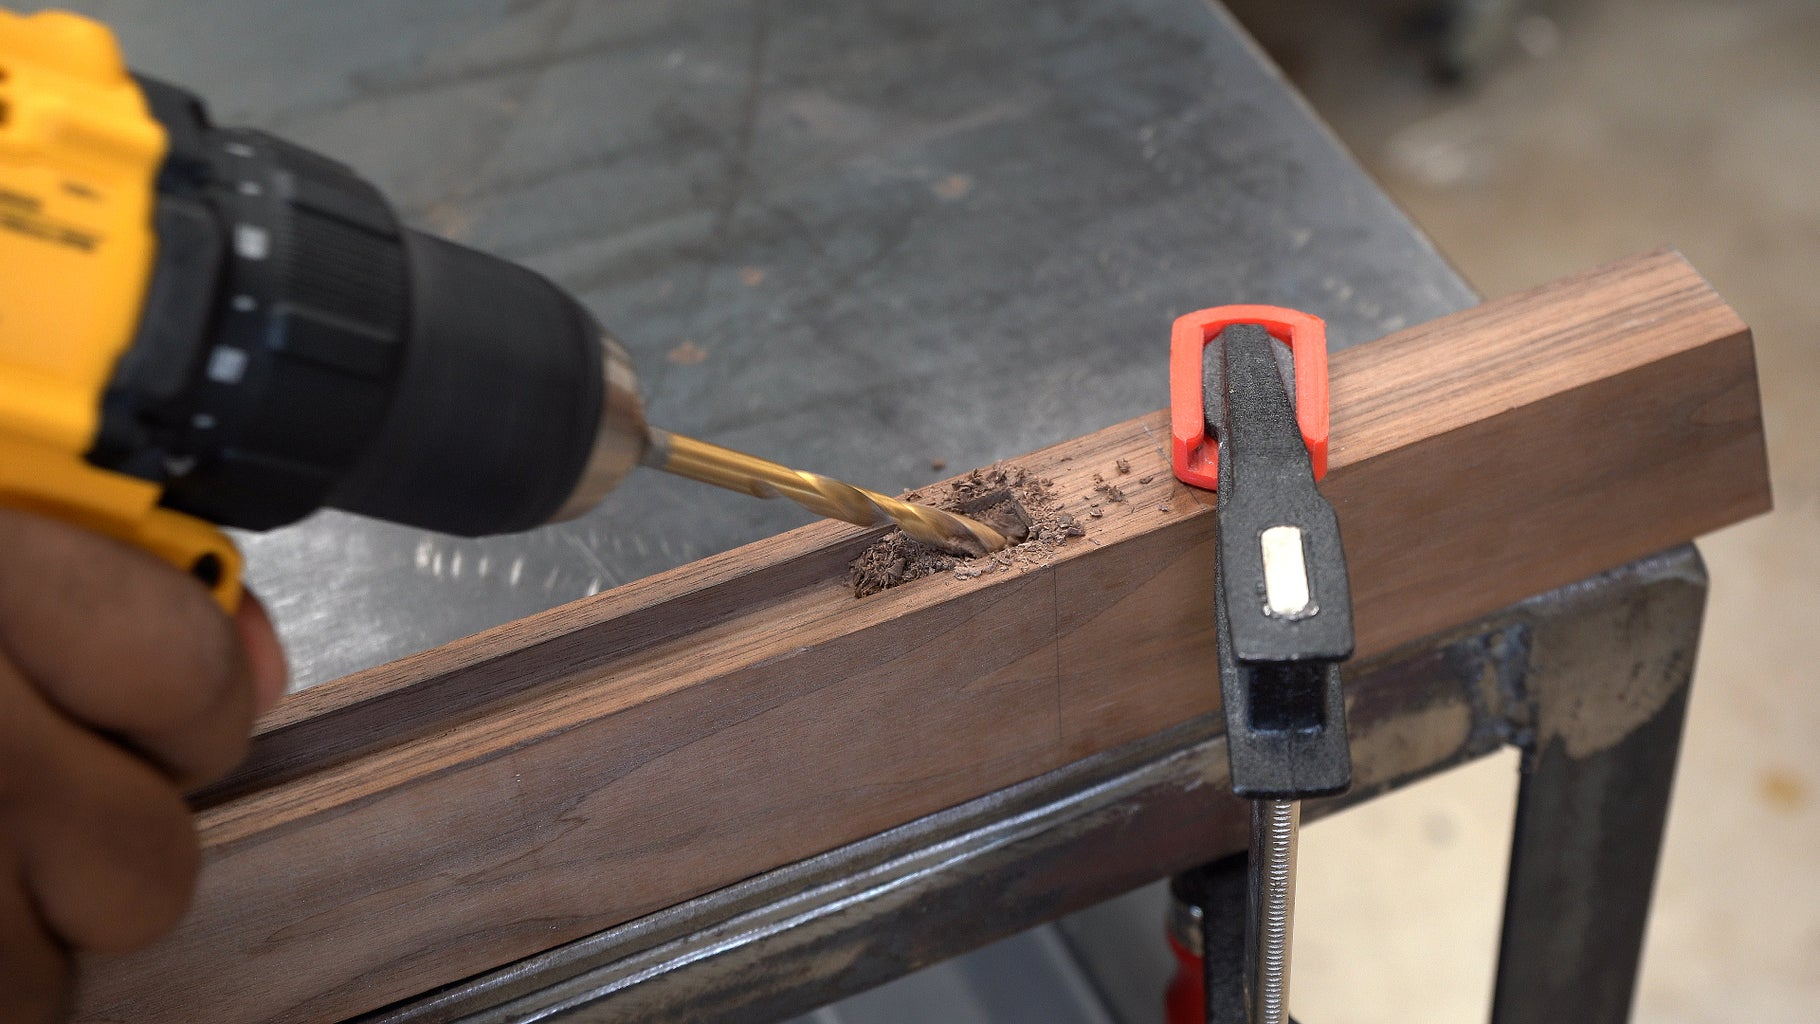 Drill a Hole to Pass the Light Power Wire